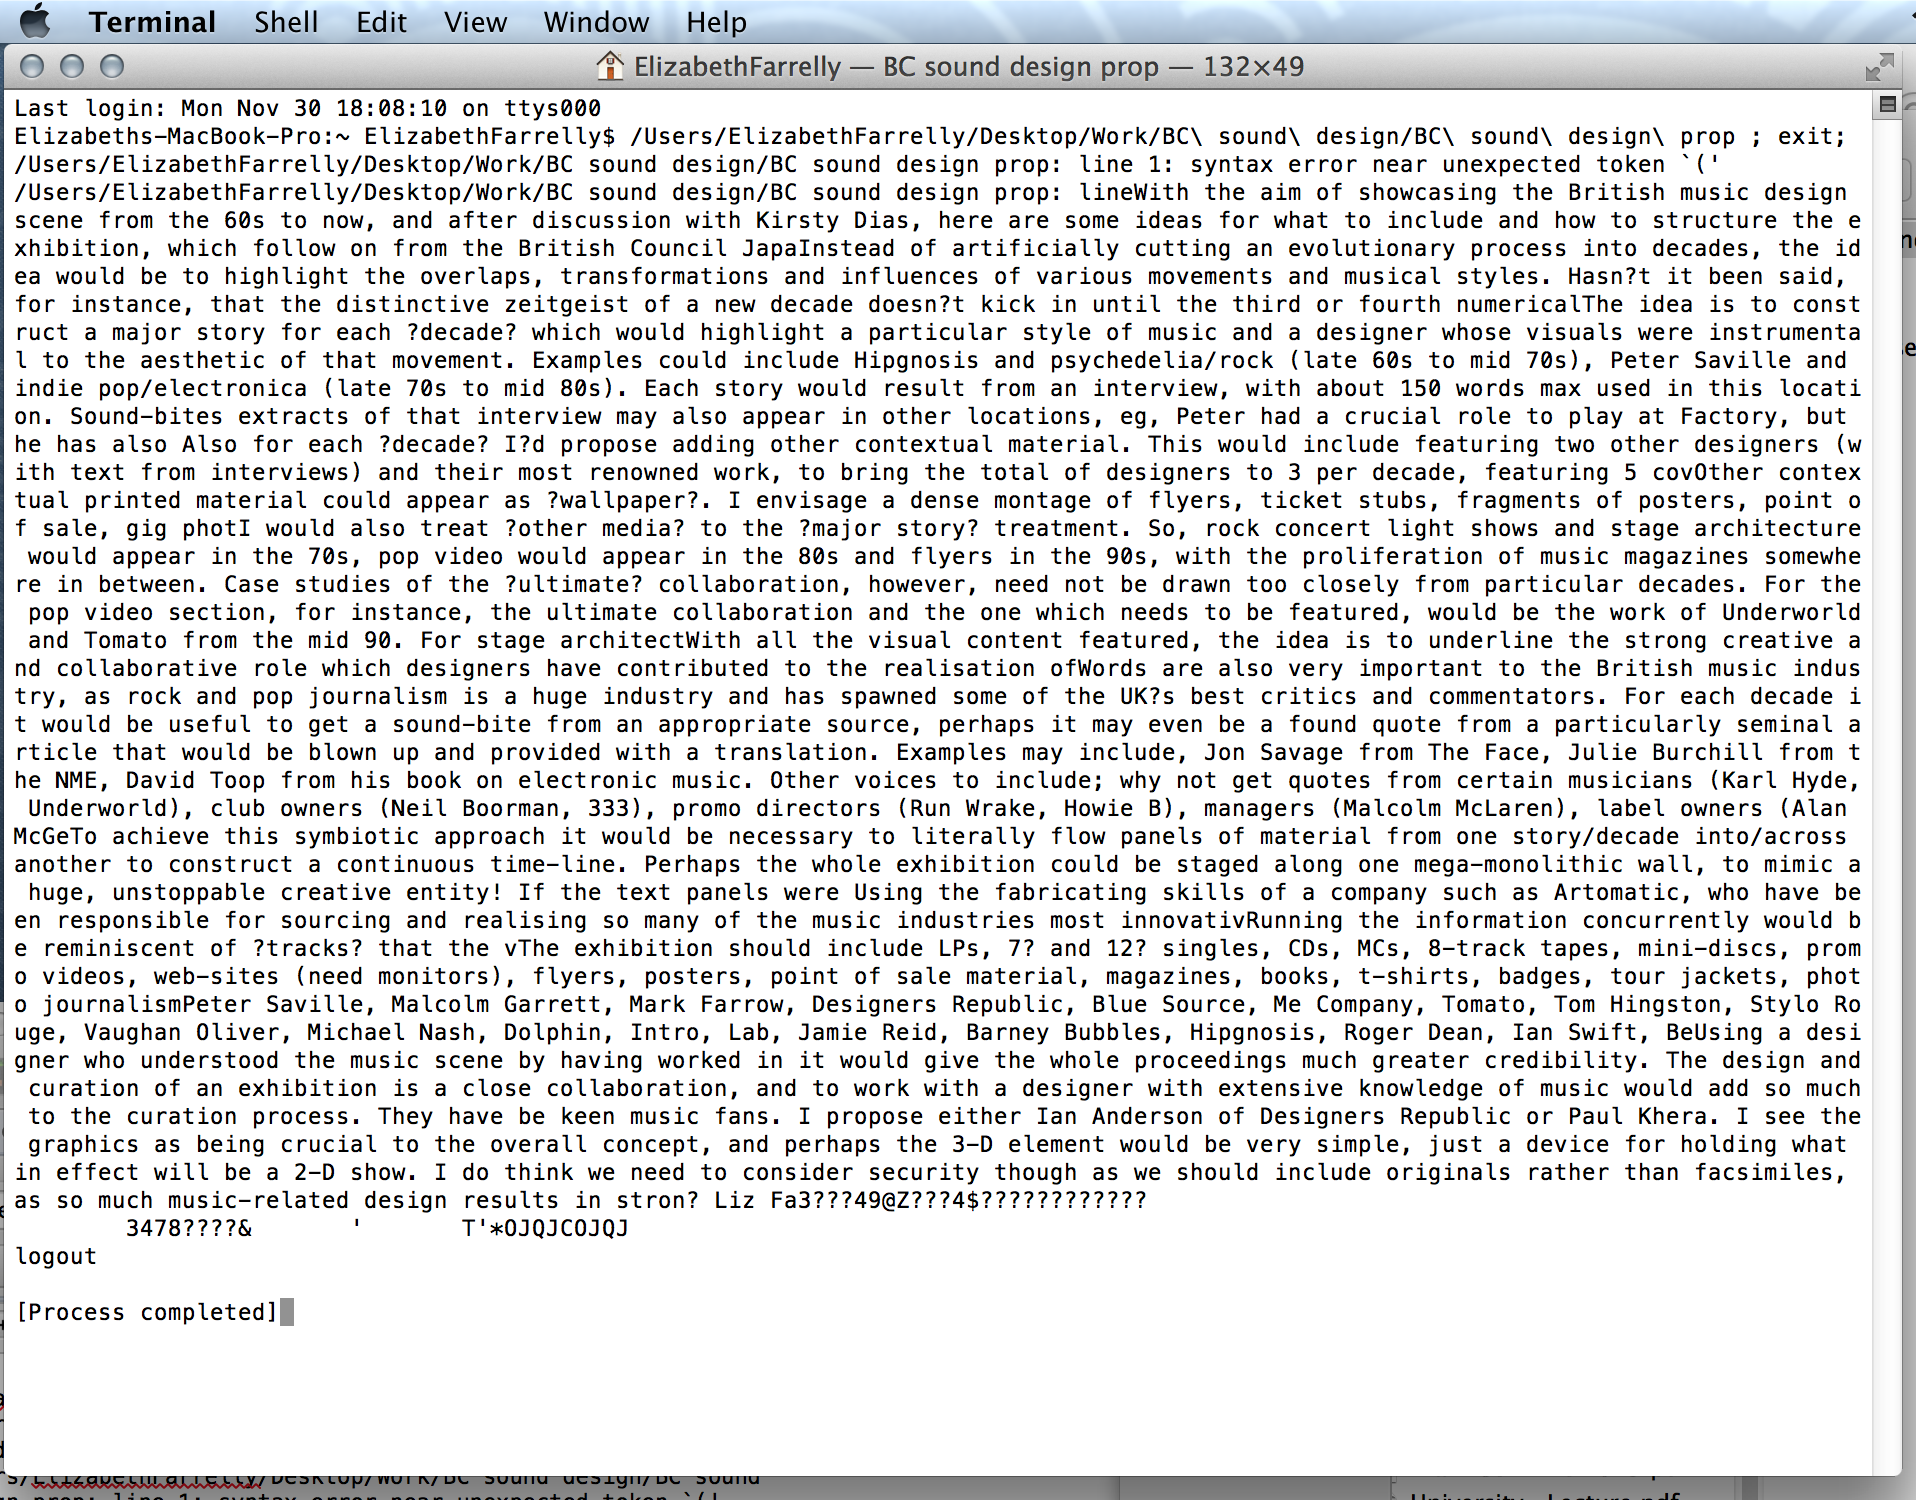 Screen Shot of a corrupted file; the exhibition proposal, with some sentences missing